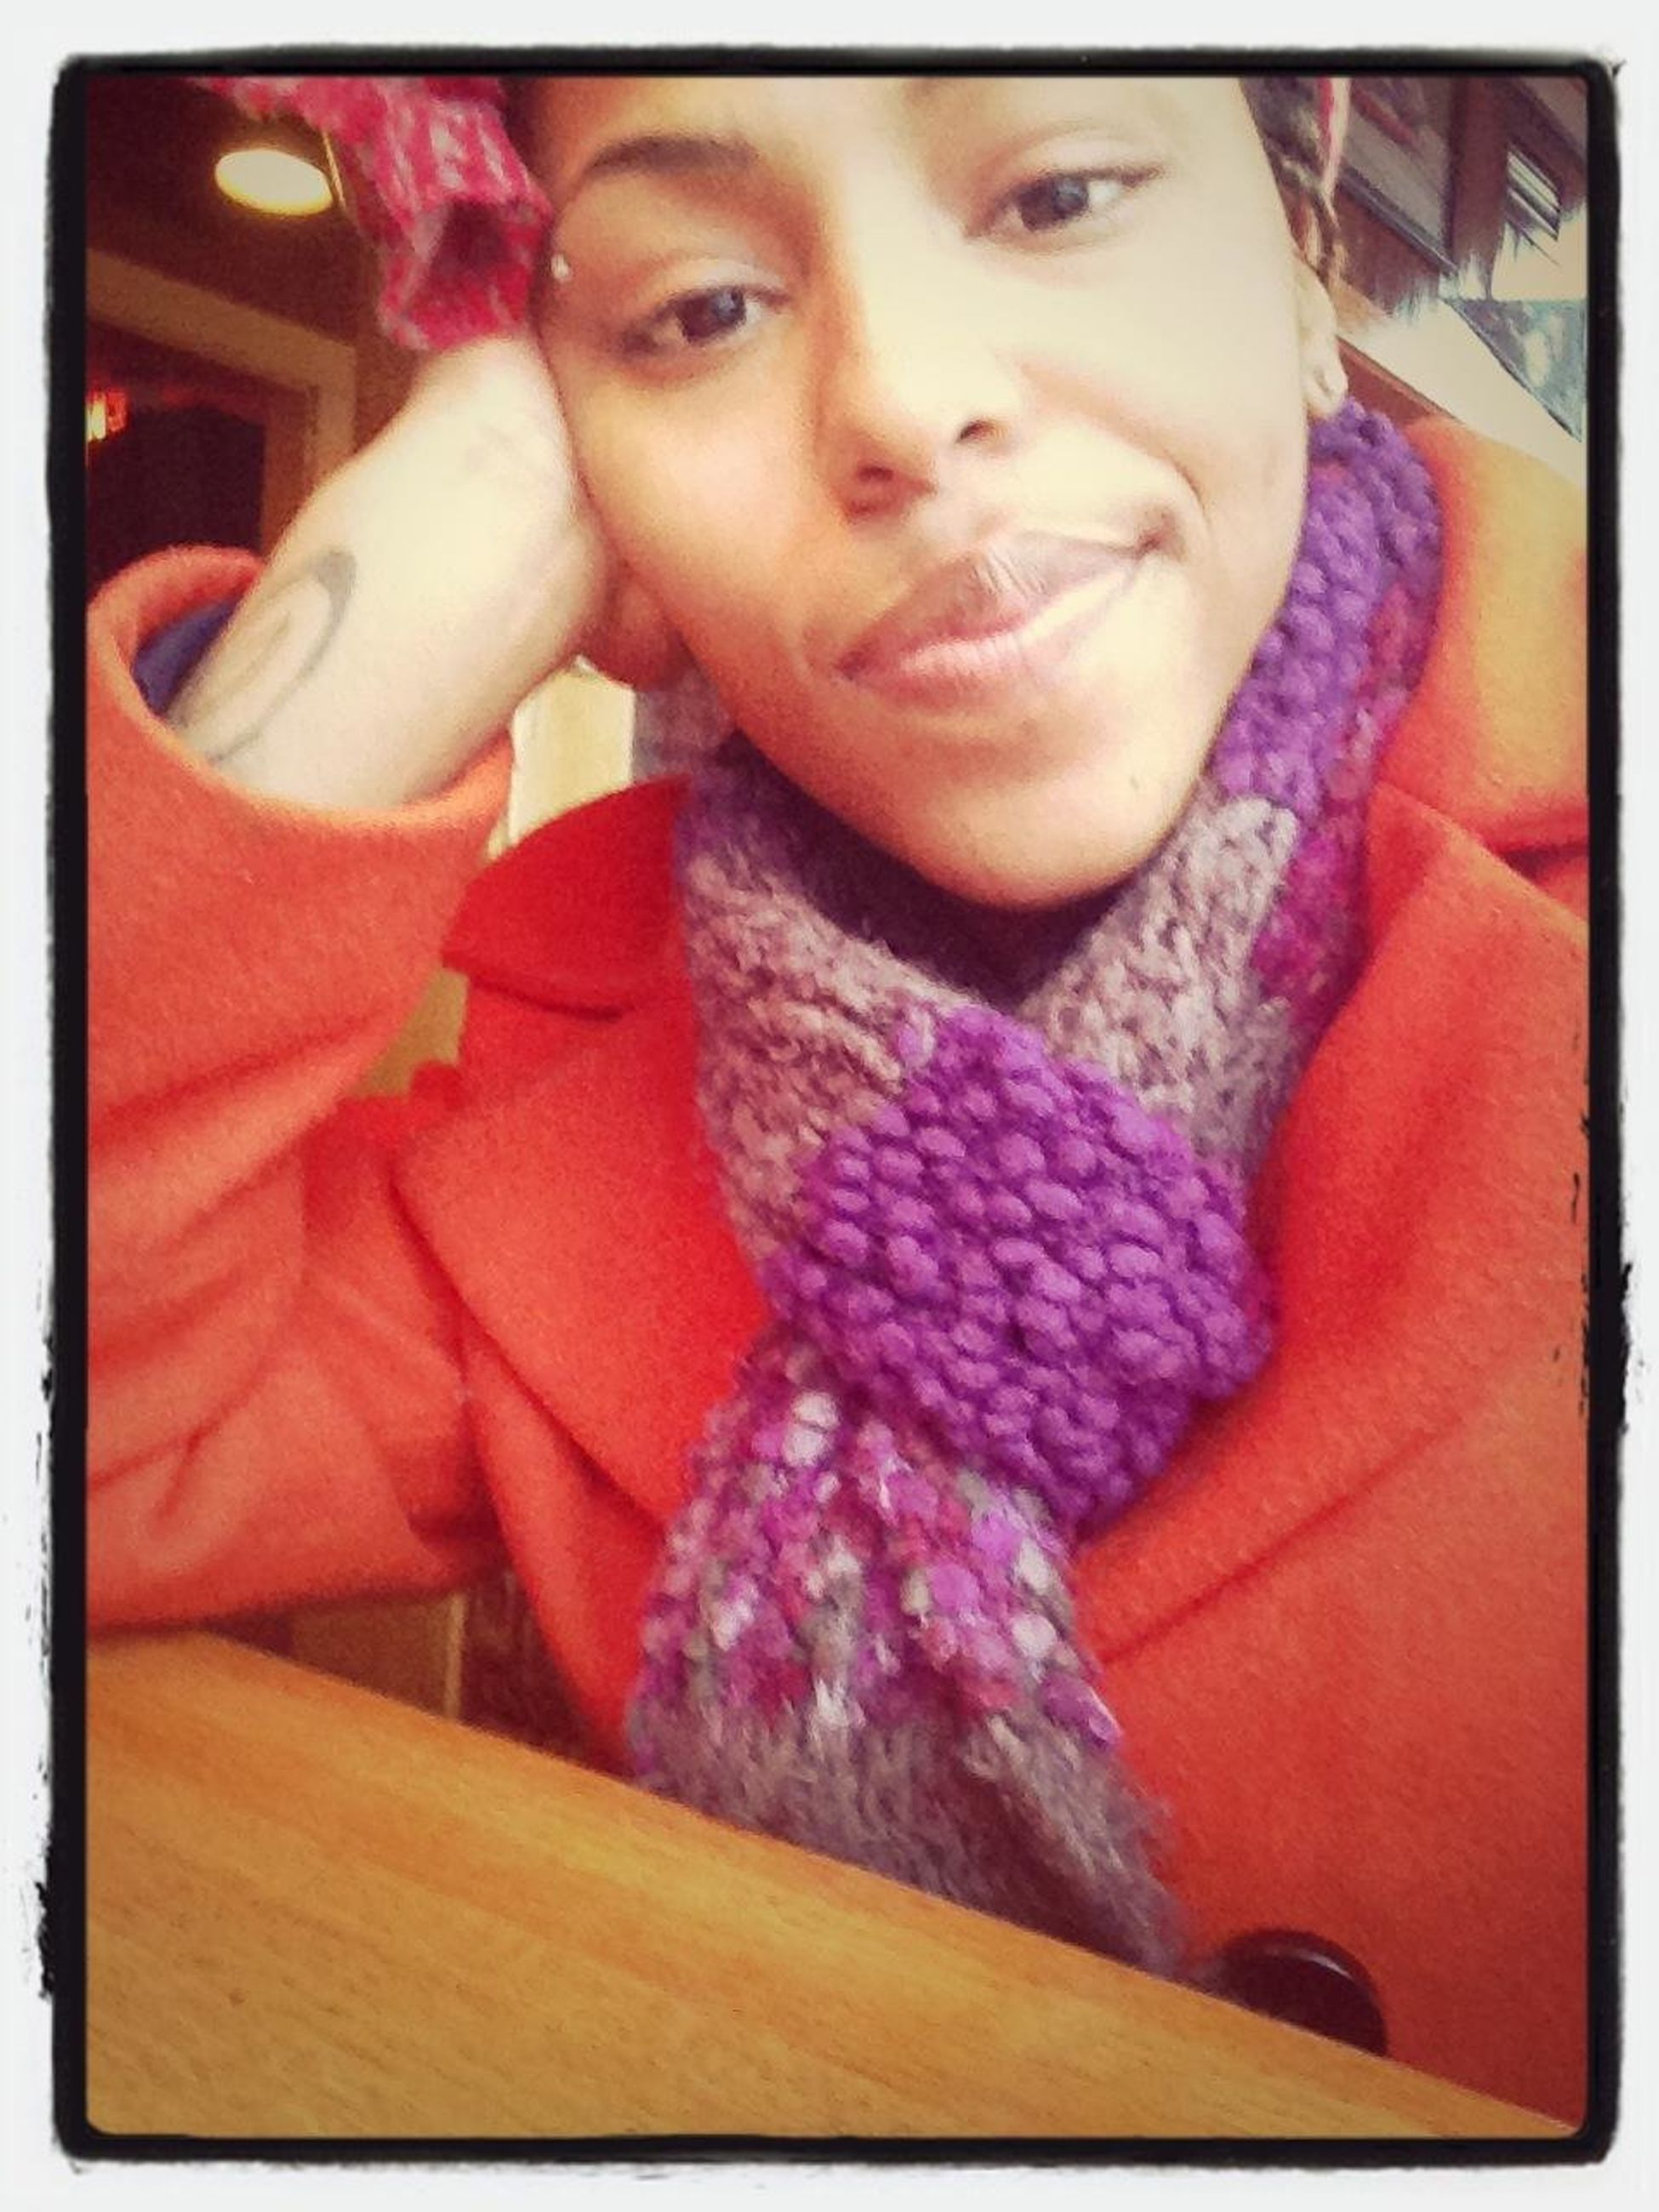 On a lunch date w/ @loyalty25